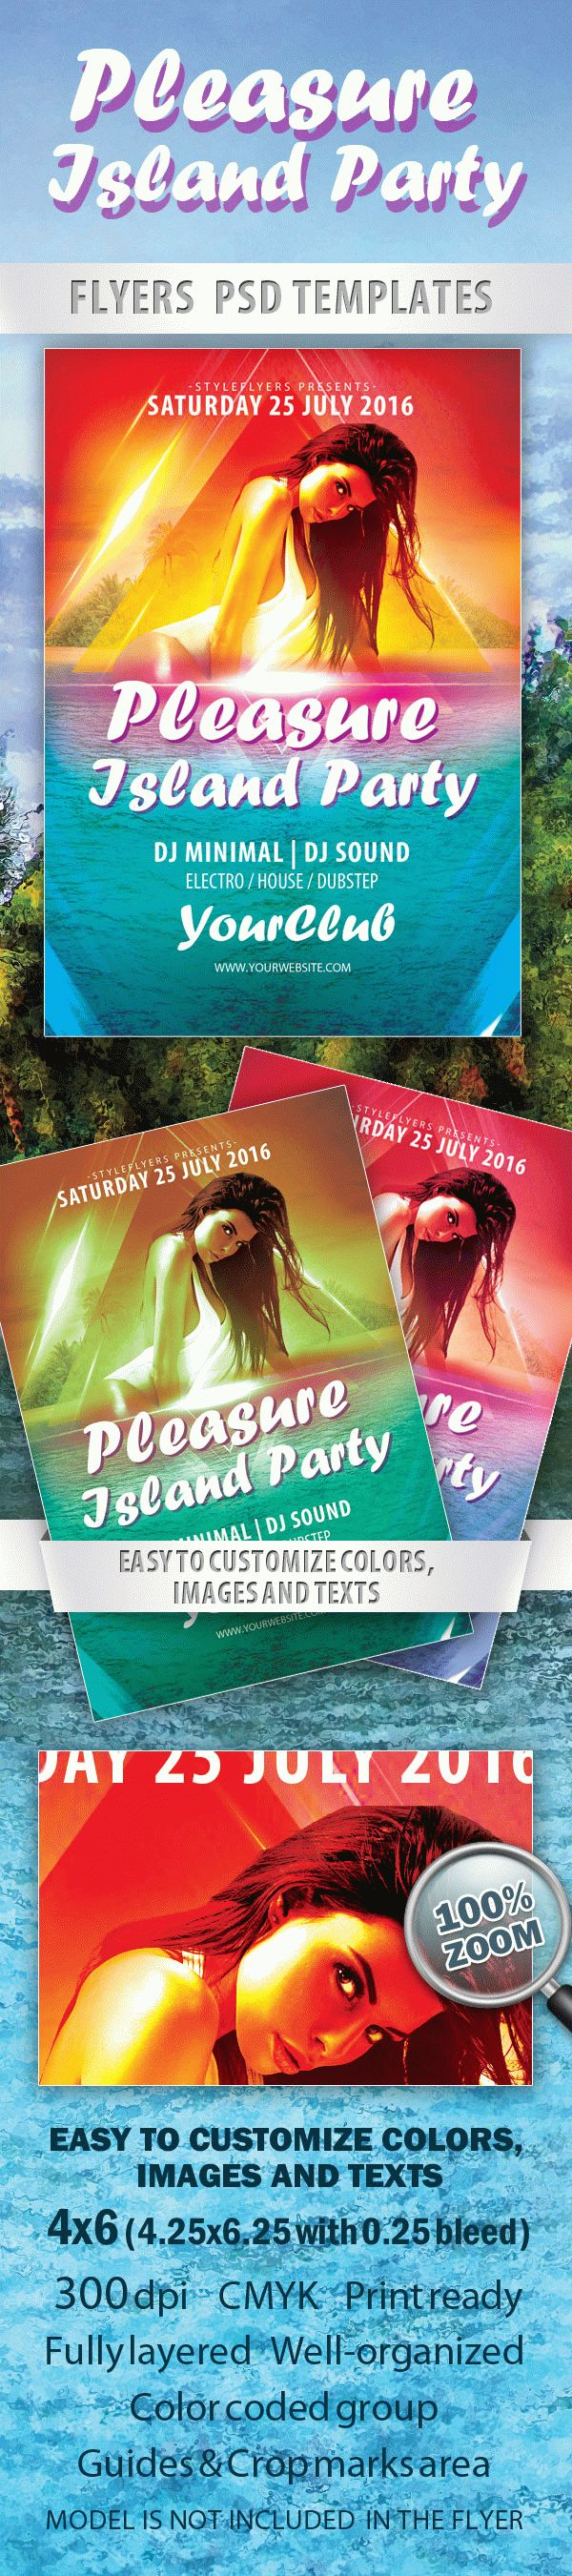 Pleasure Island Party Flyer